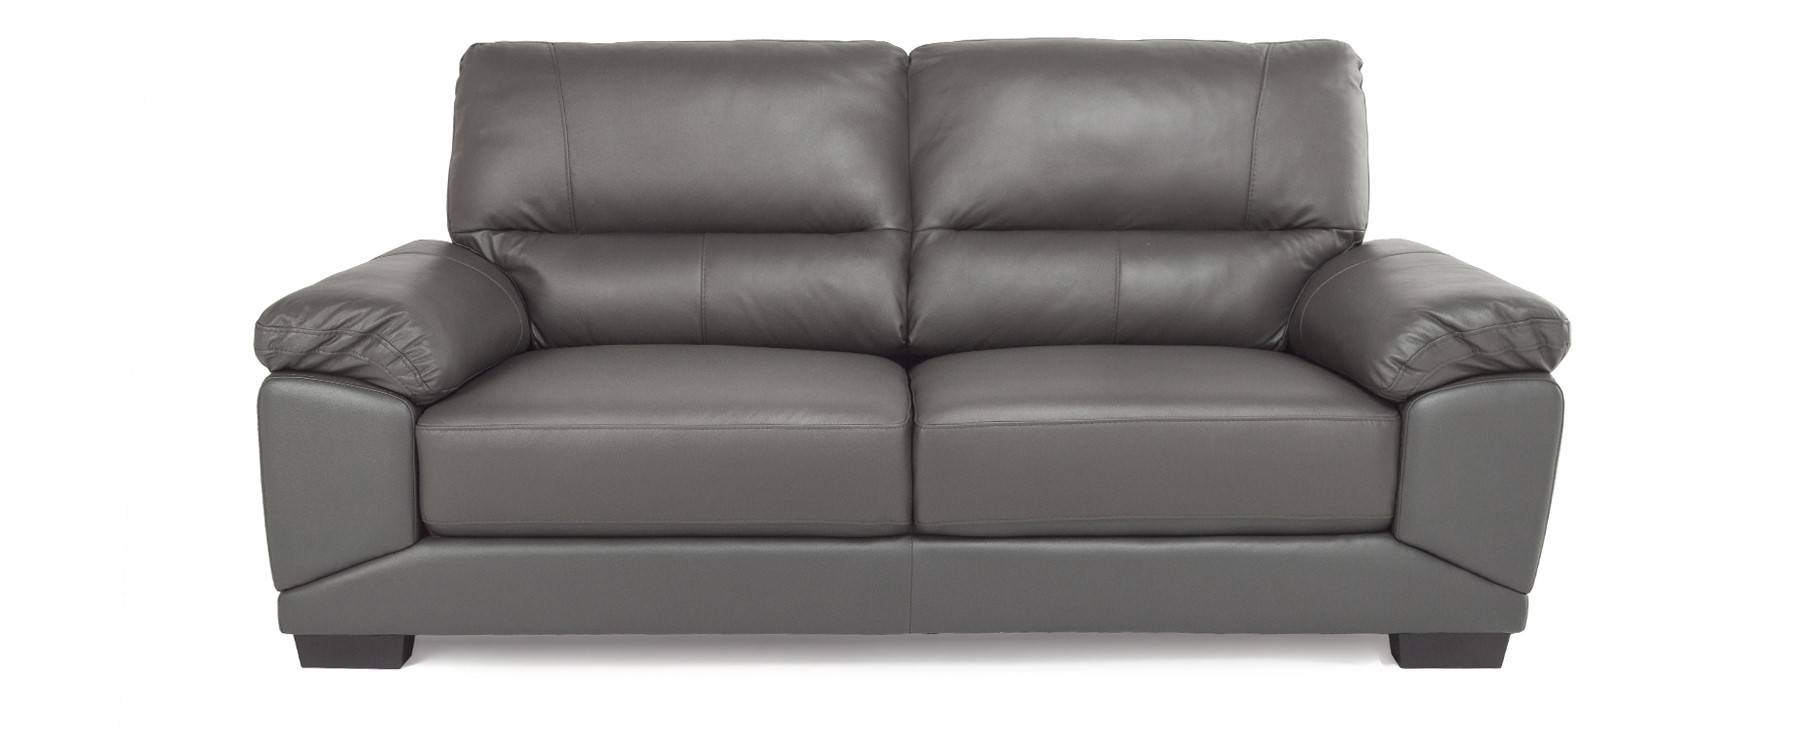 Furniture Home : Sofa Chairs Furniture Designs (13) Modern Elegant within Sofa Chairs (Image 13 of 30)